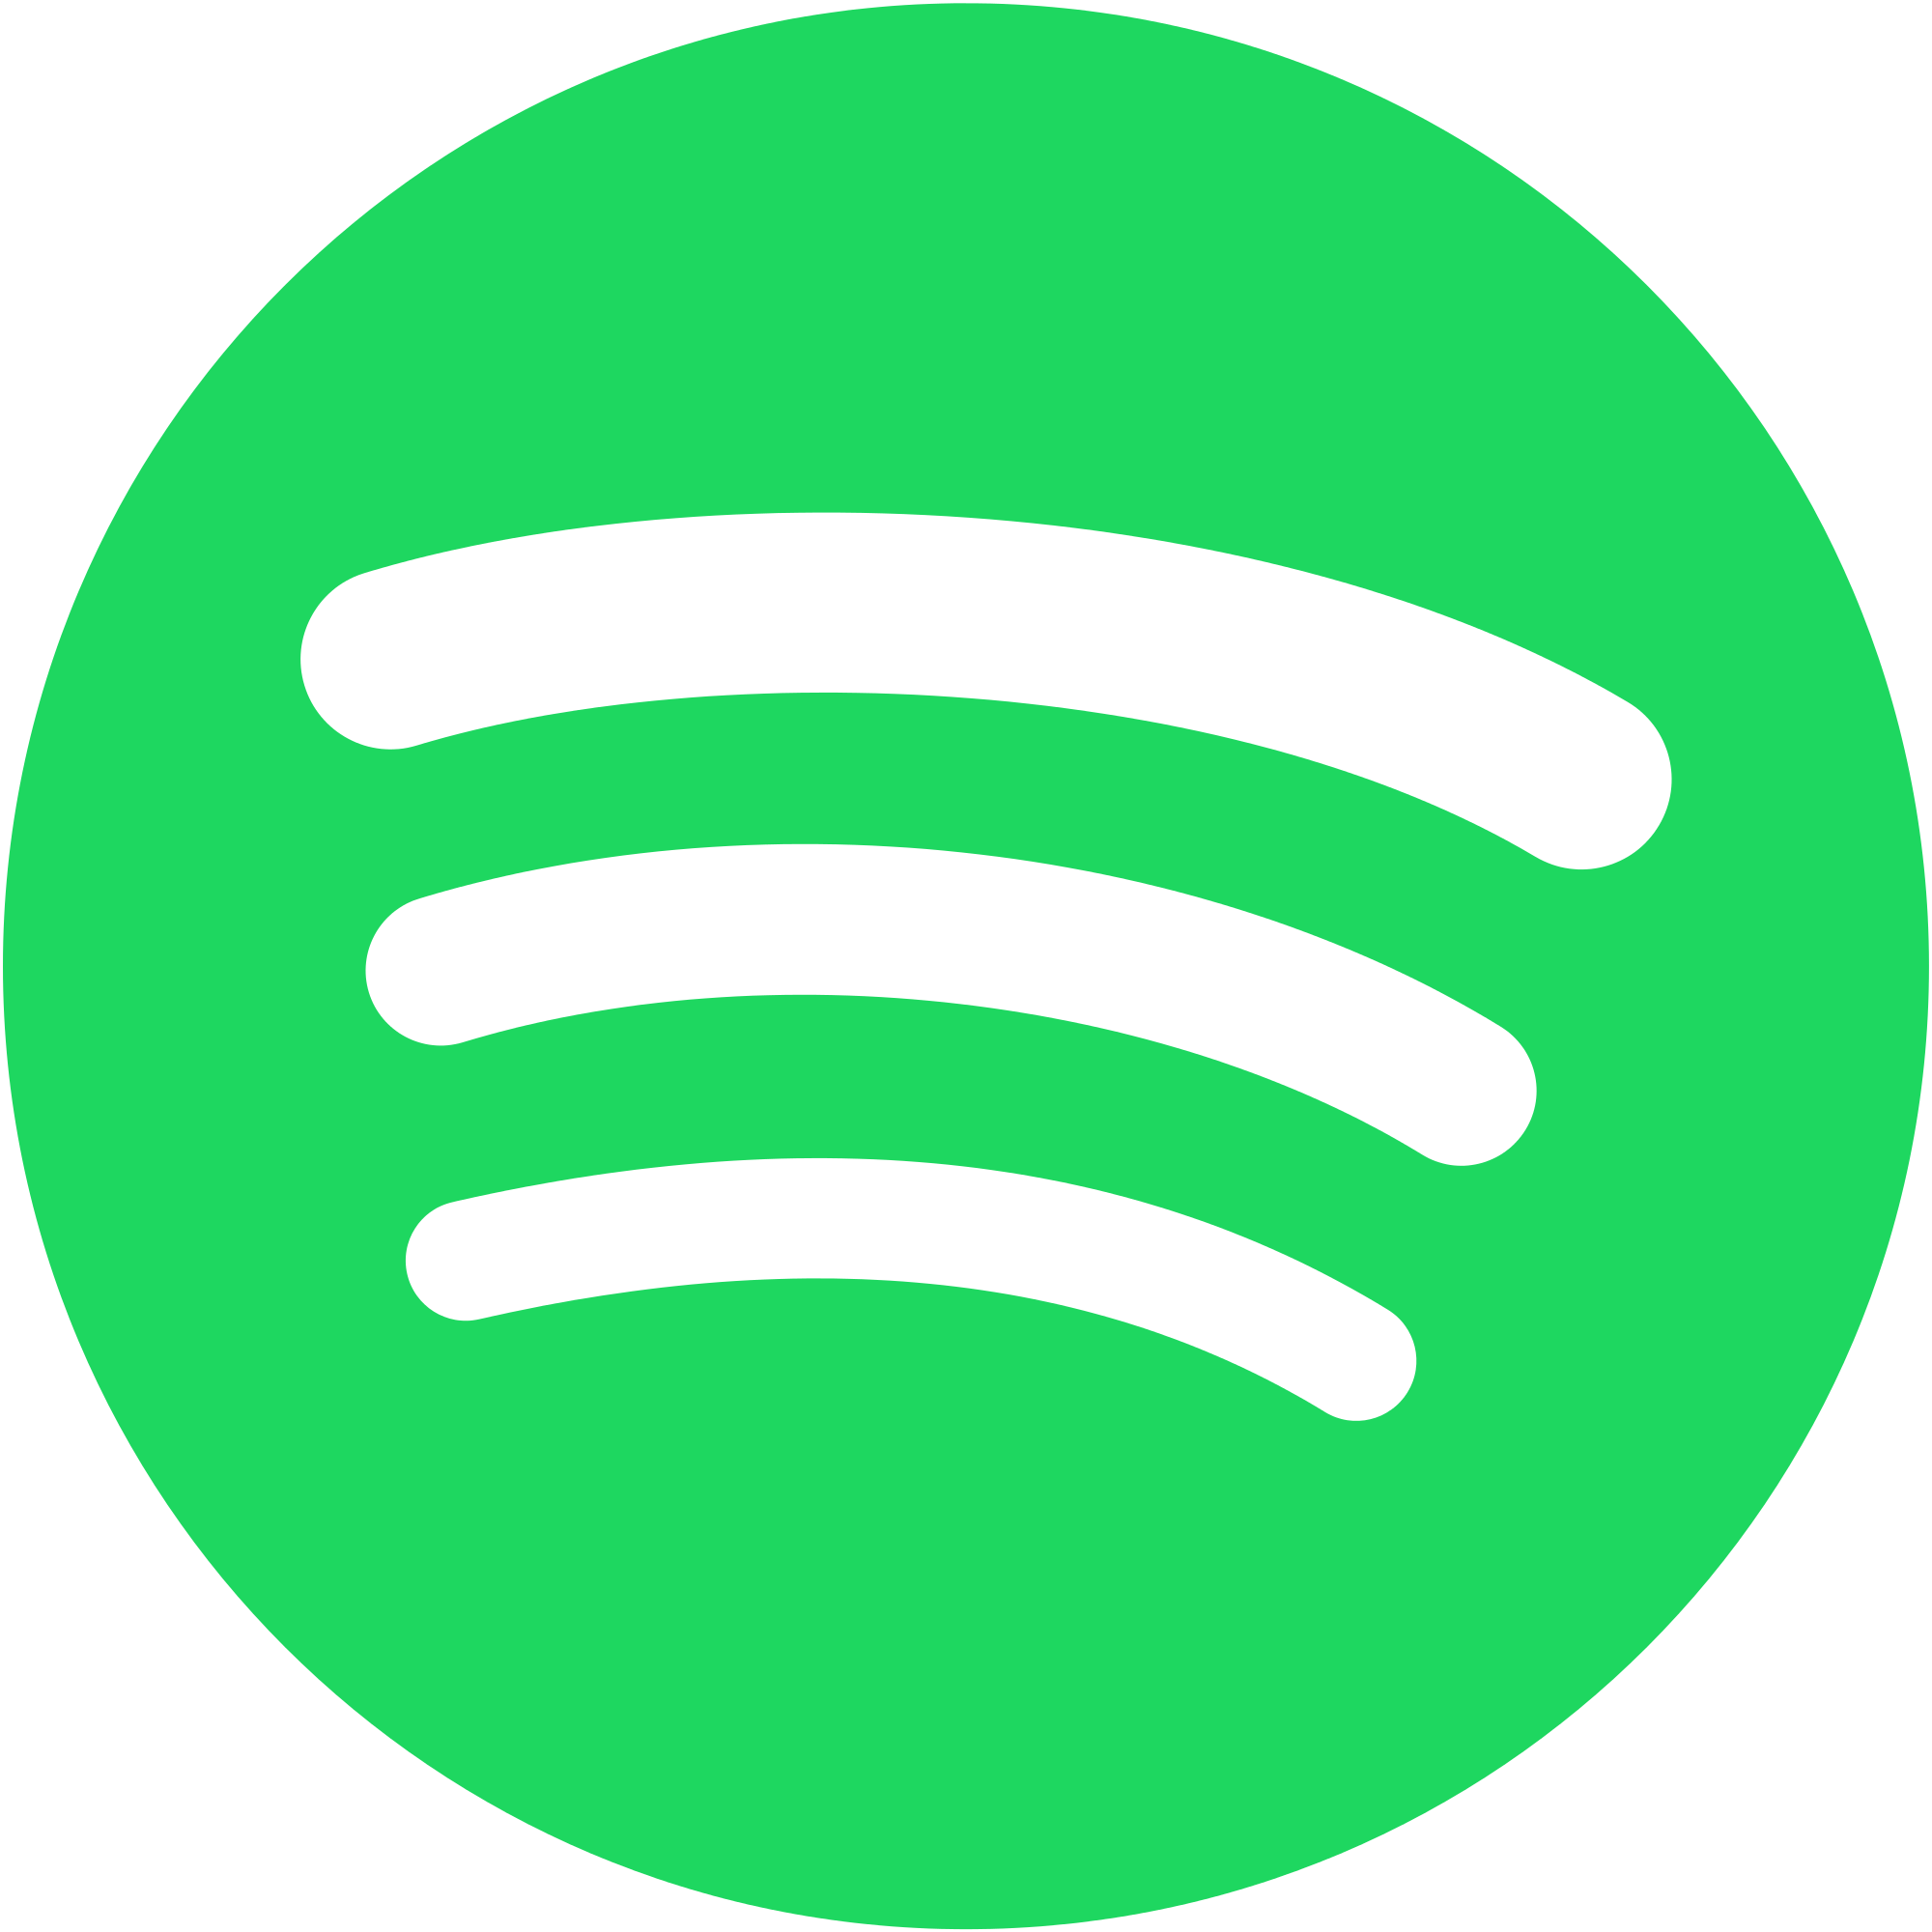 Spotify vector stream. Image logo without text